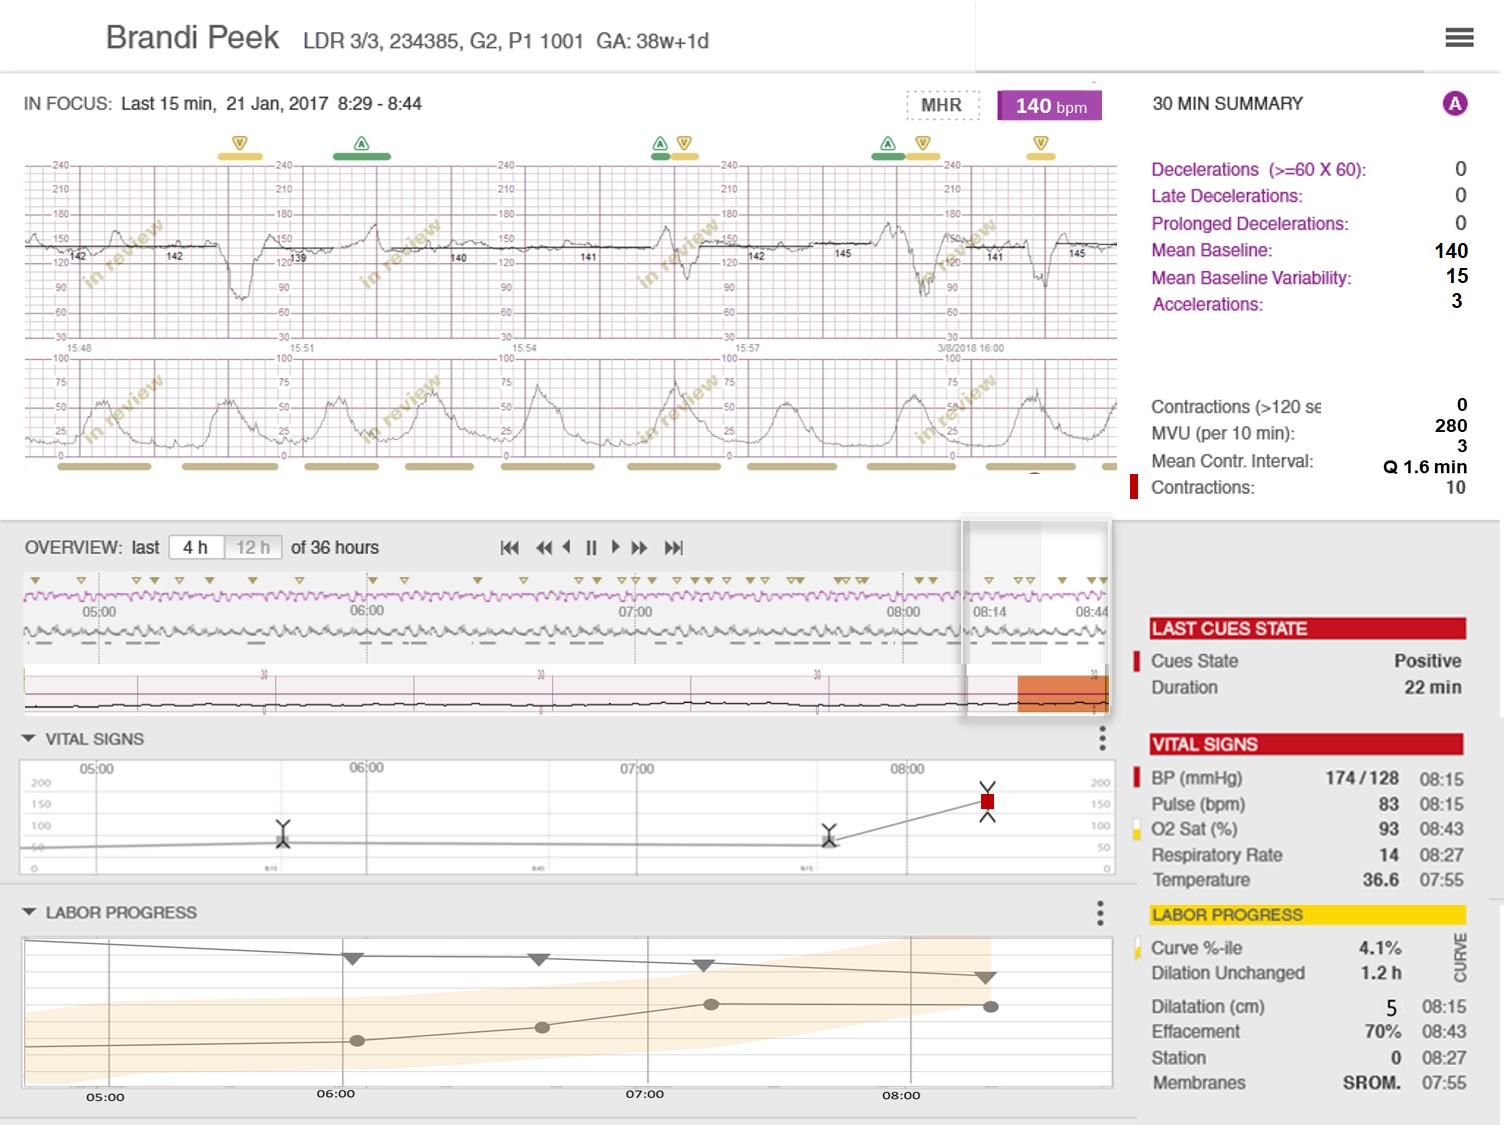 PeriWatch Vigilance, the first automated perinatal early warning system